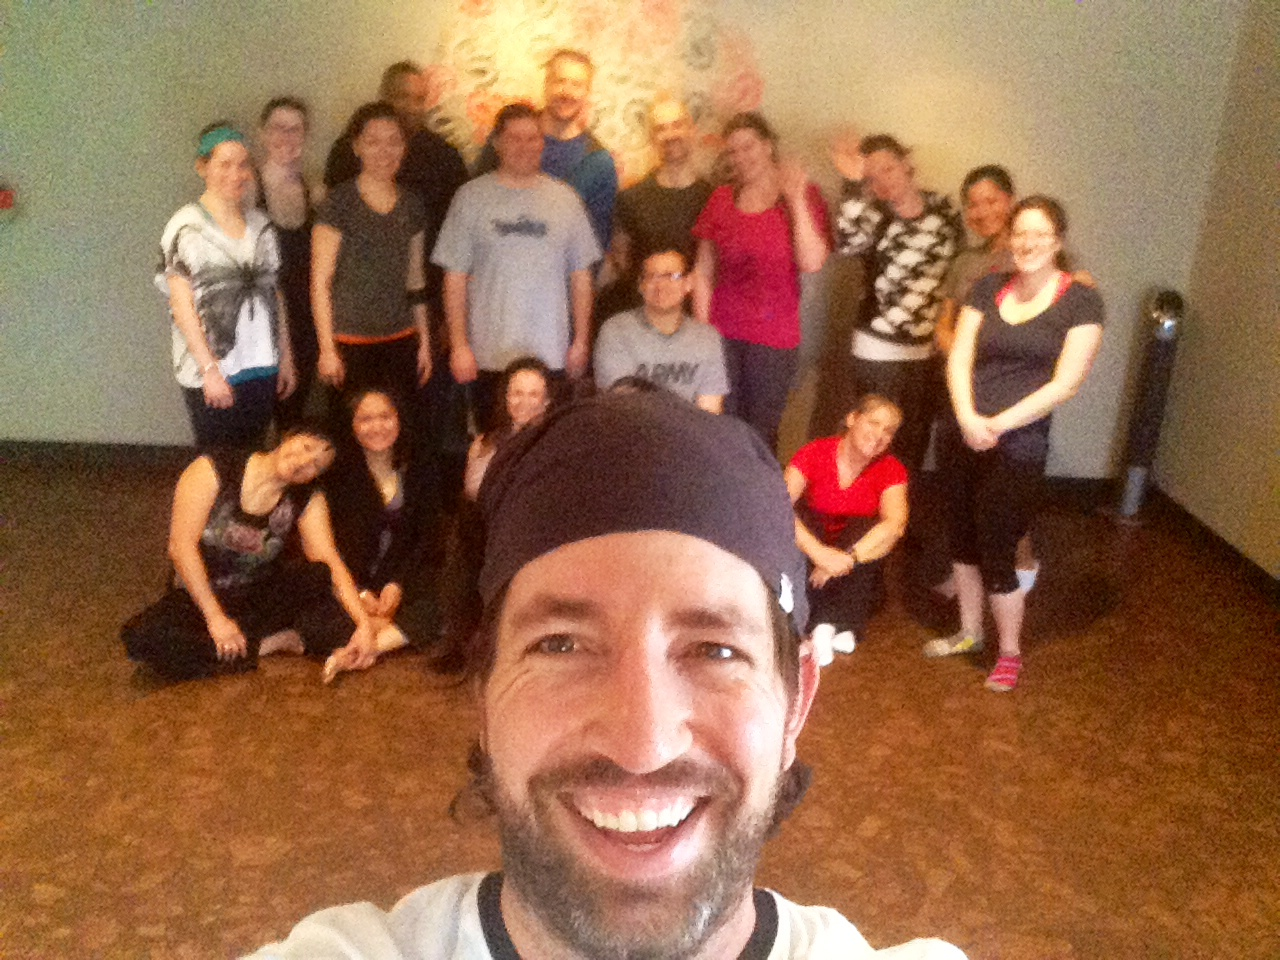 Post yoga for Vets picture of the group.  Art Boorman  led this special class.